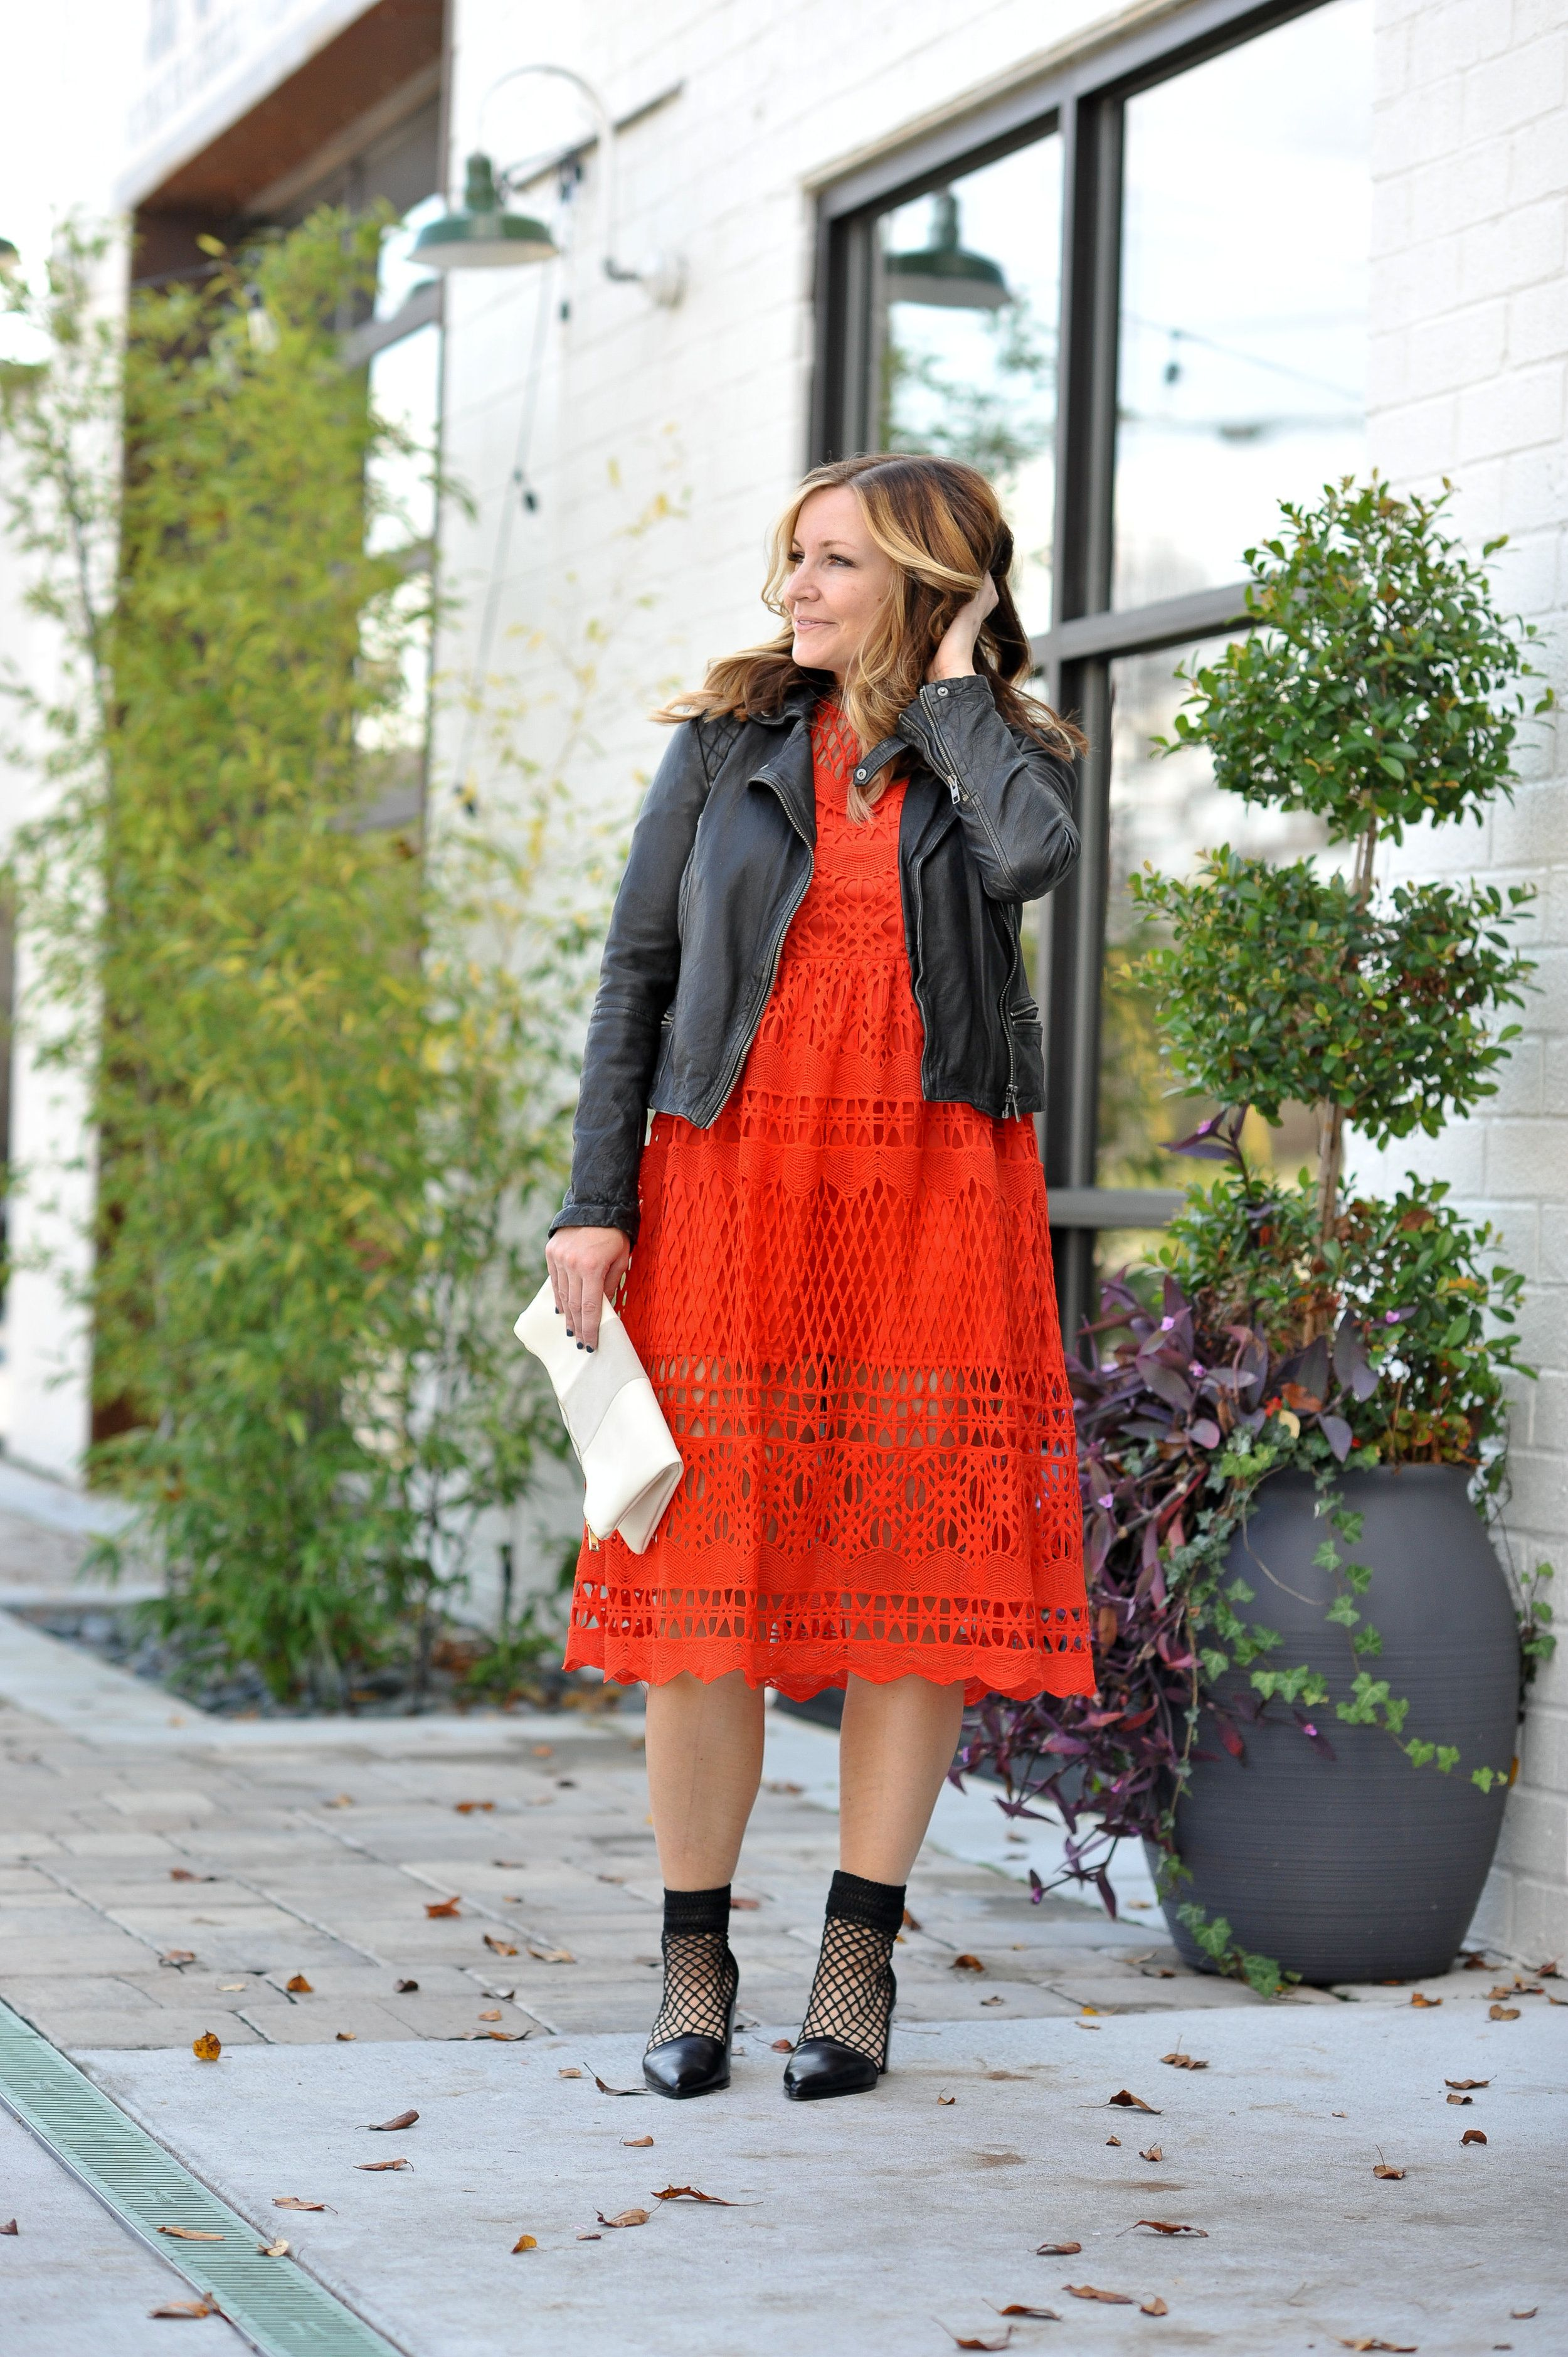 Holiday Red Lace Dress Moto Jacket Ratmj Blog All